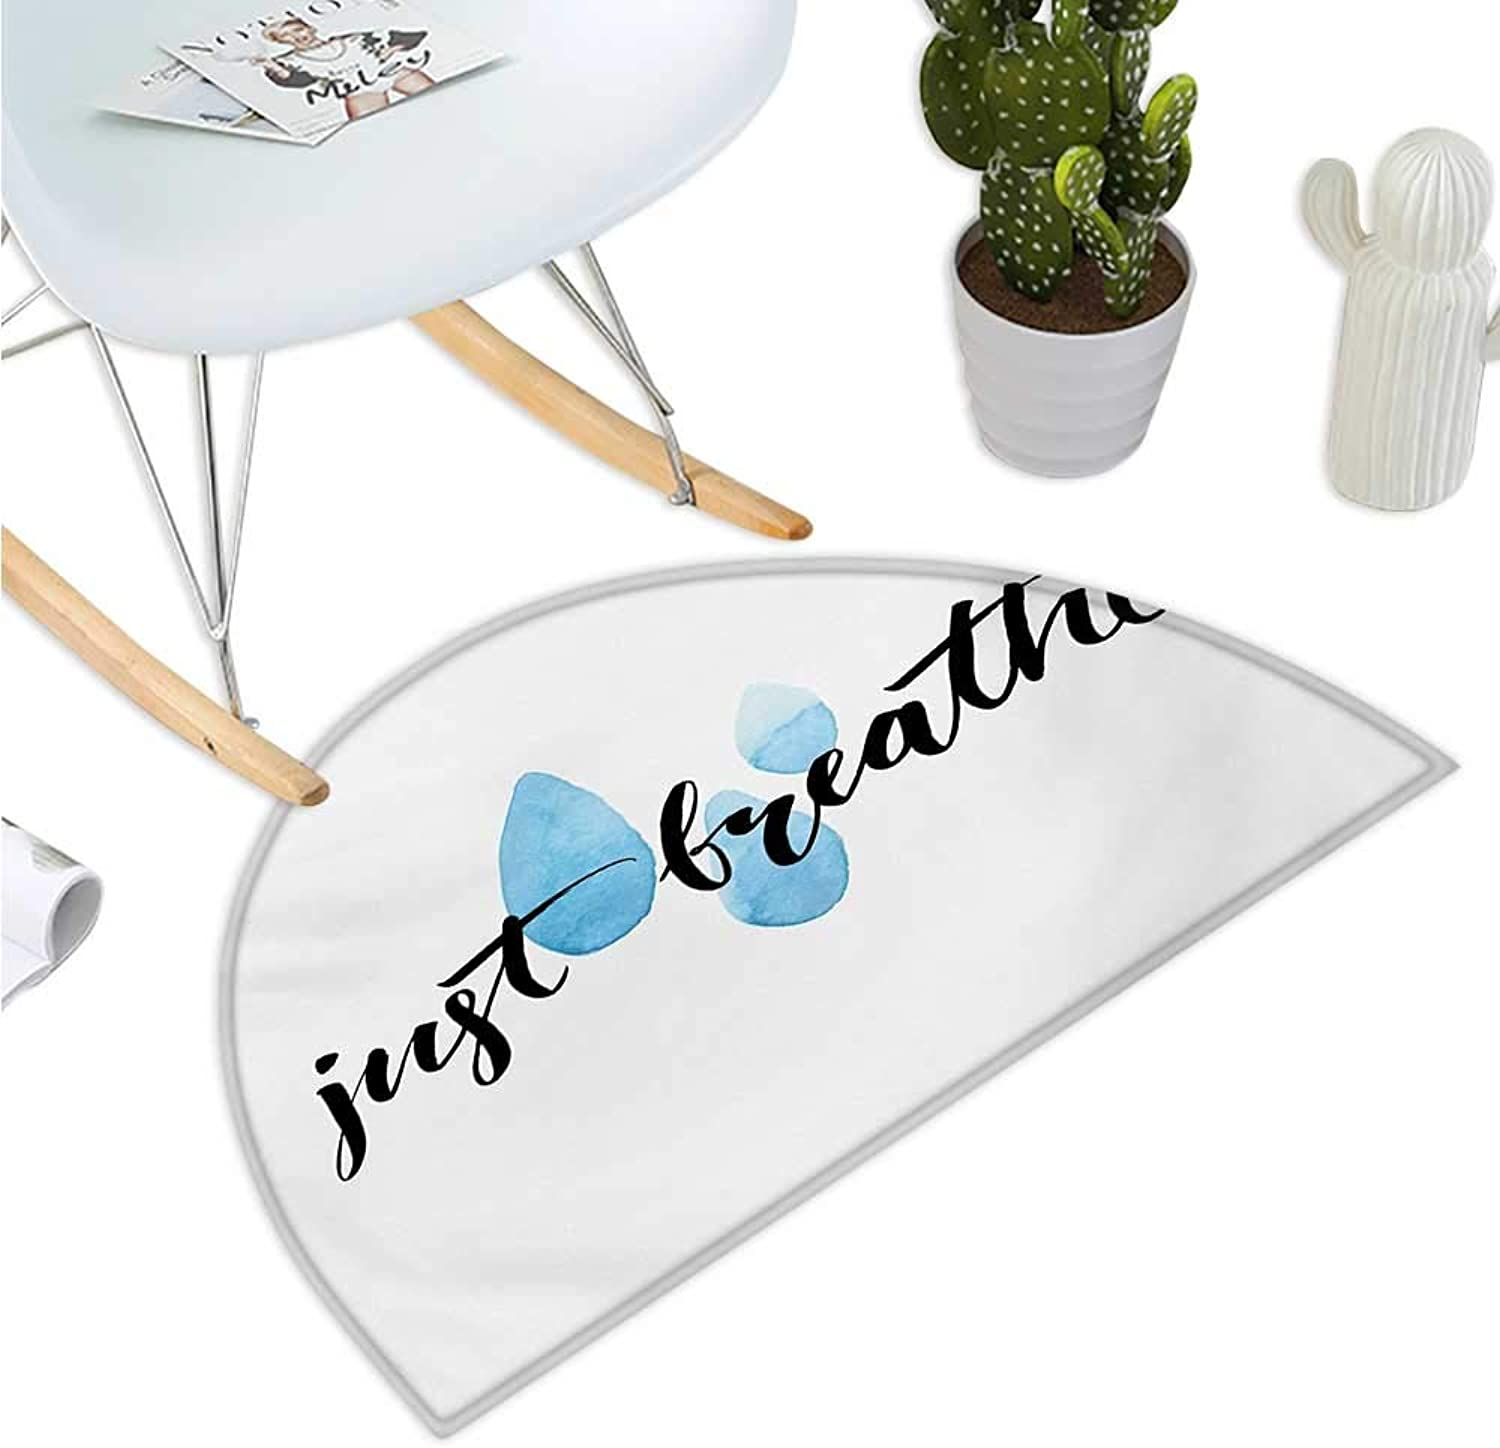 Quote Half Round Door mats Just Breathe Brush Lettering with Watercolor Style Raindrop Spots Entry Door Mat H 35.4  xD 53.1  Pale bluee Black and White